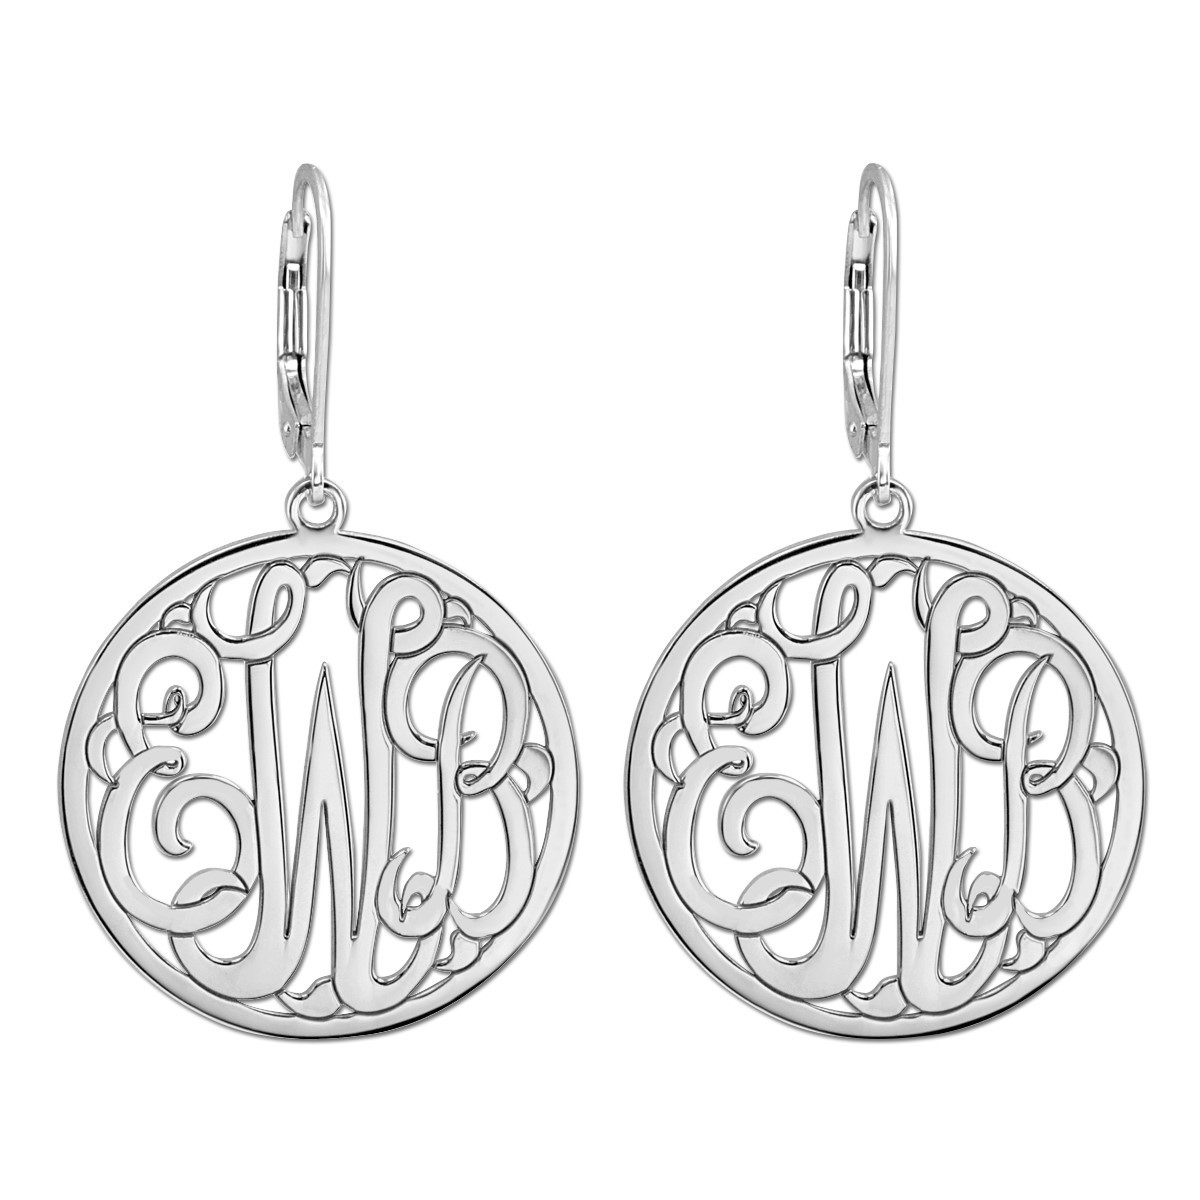 25MM MONOGRAM LEVER BACK EARRING